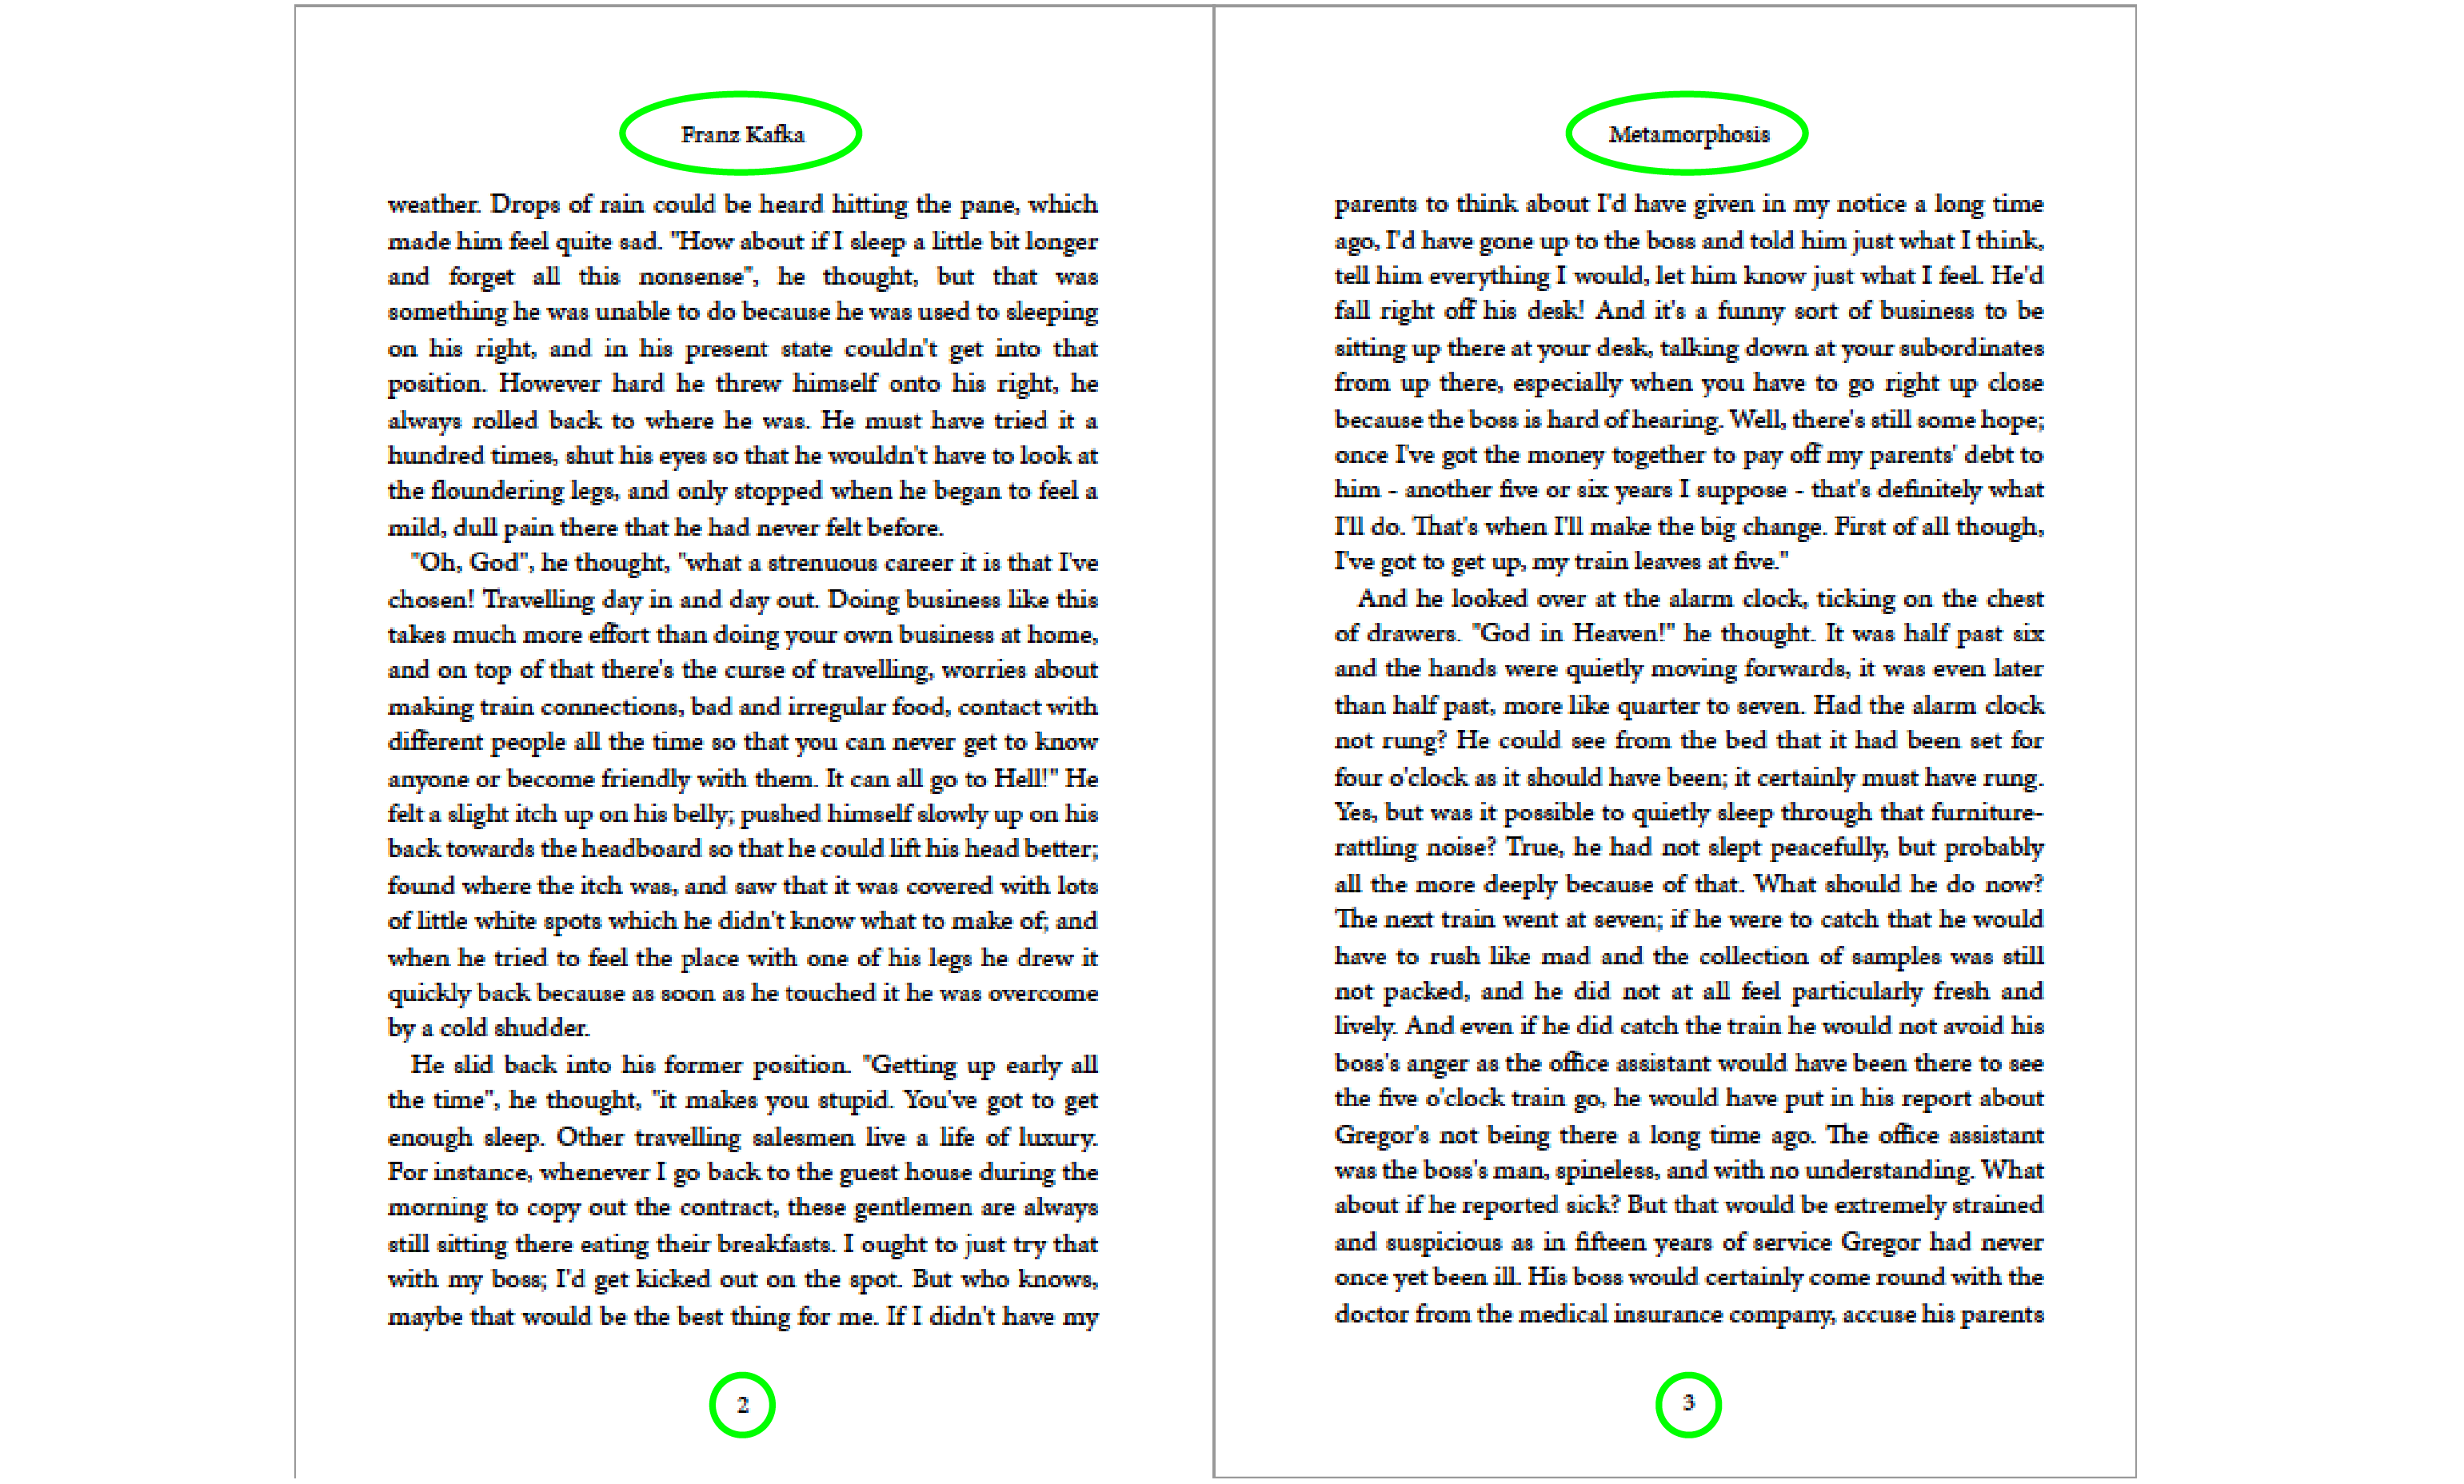 A PDF spread that highlights the automatically-generated running header text and page numbers